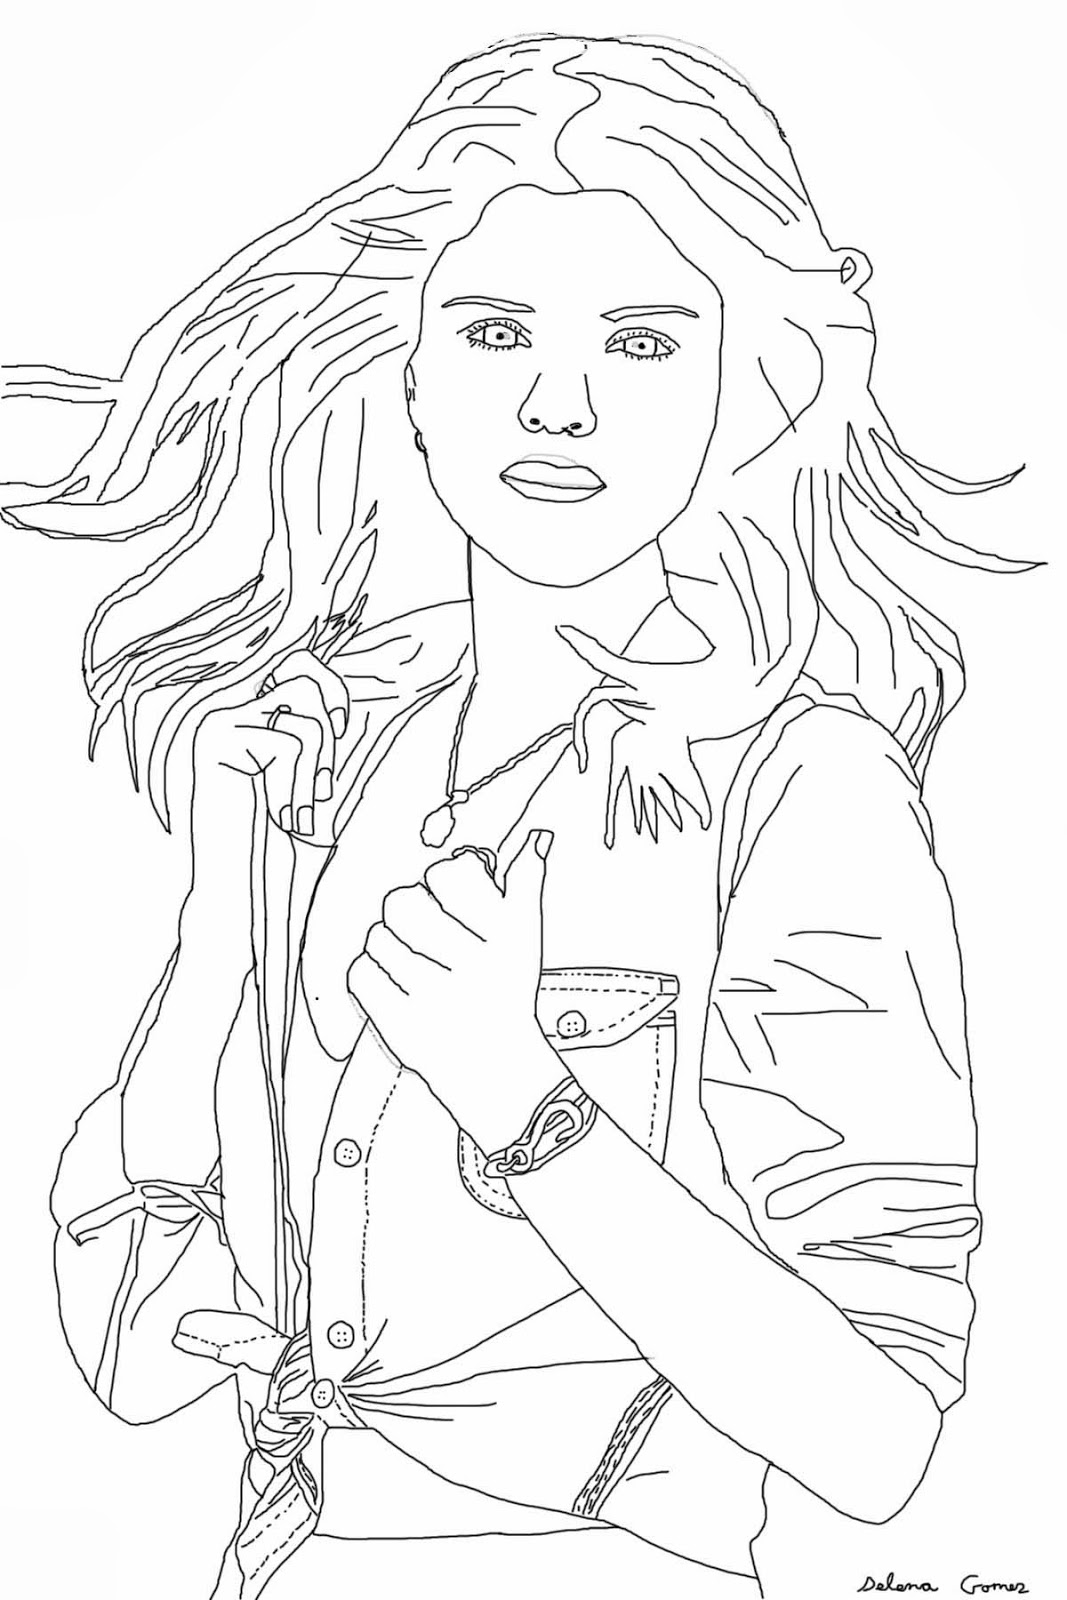 Selena gomes free colouring pages for Selena gomez coloring page